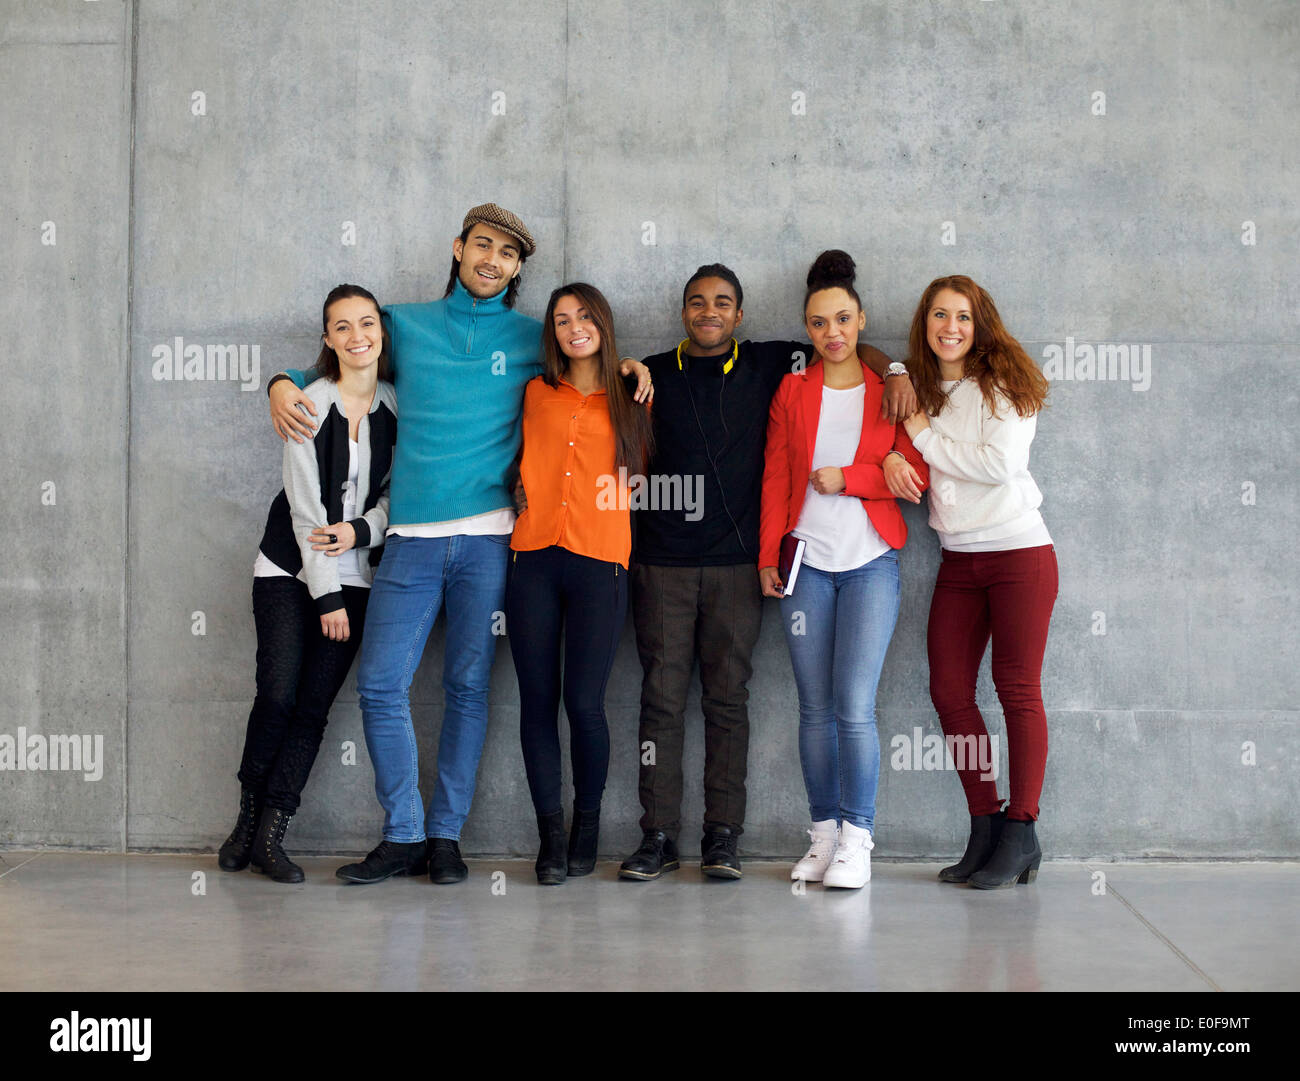 Multiethnic group of happy young university students on campus. Mixed race young people standing together against - Stock Image